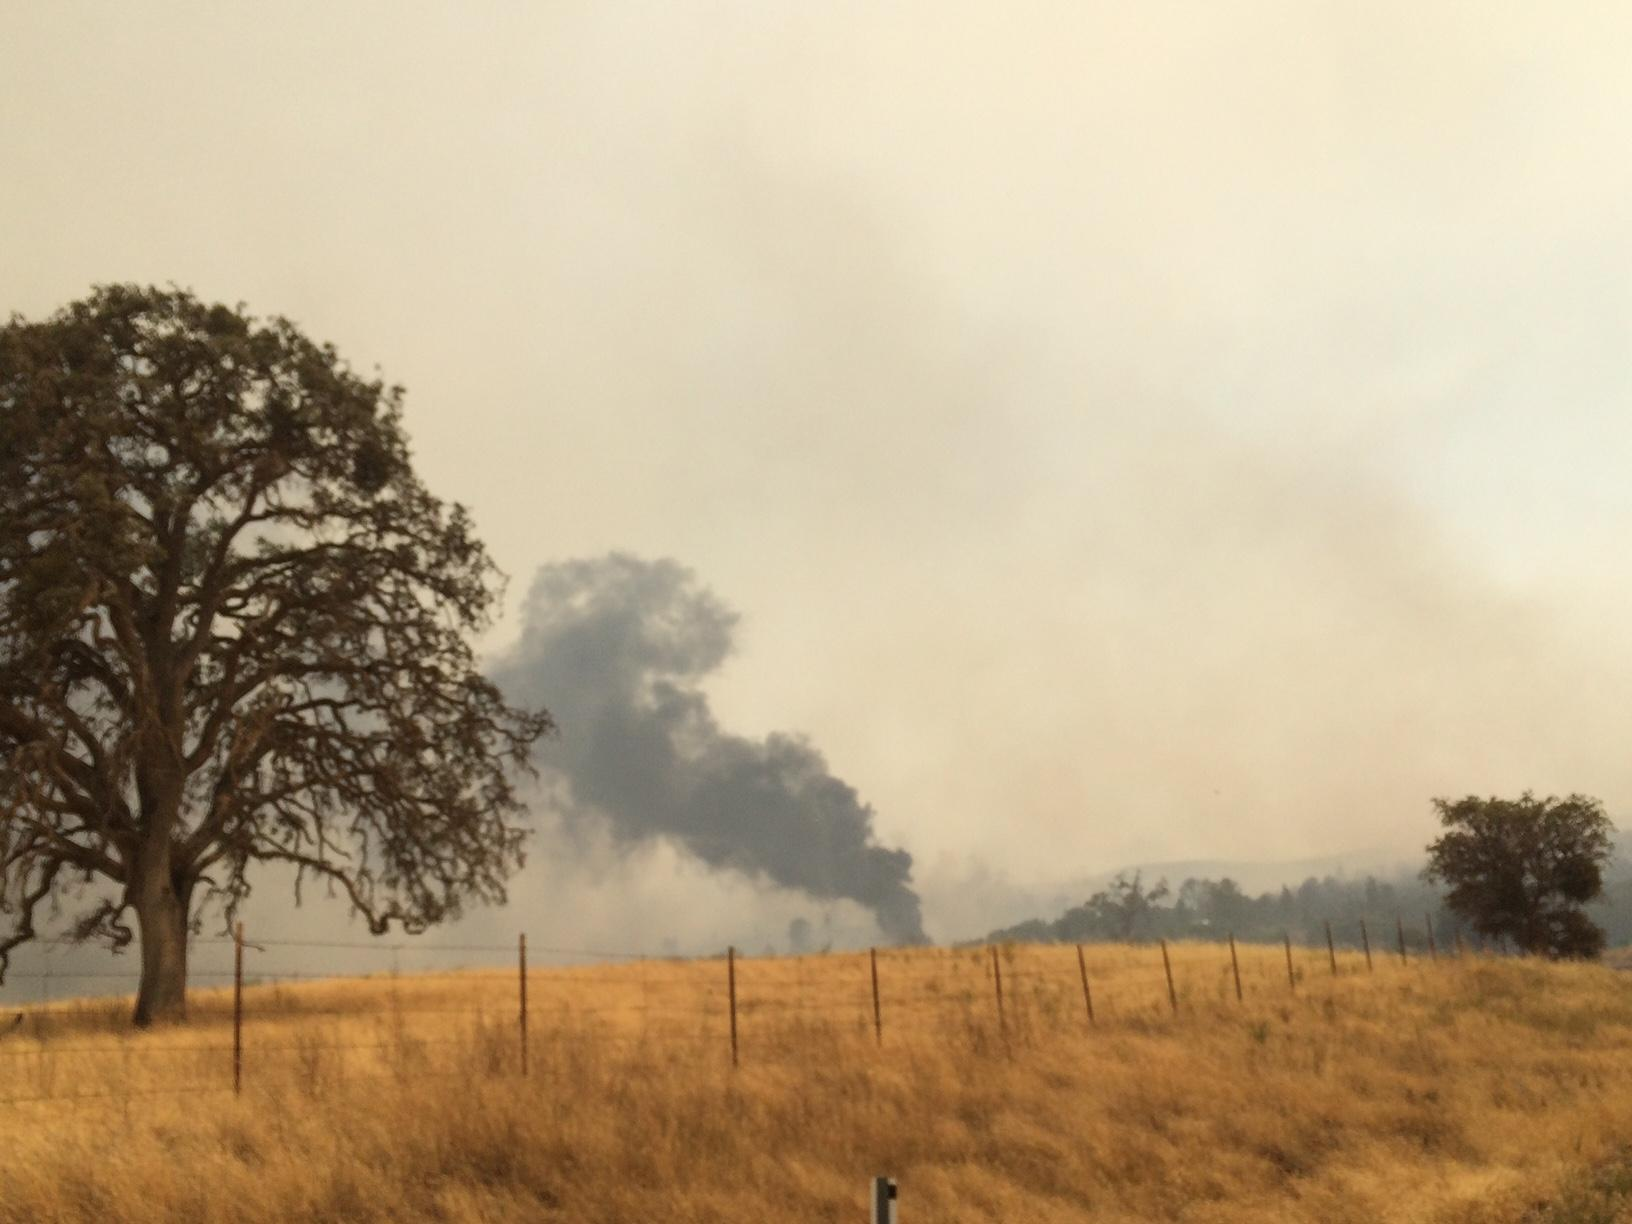 Massive wildfire in Mariposa County threatens power supply to Yosemite National Park